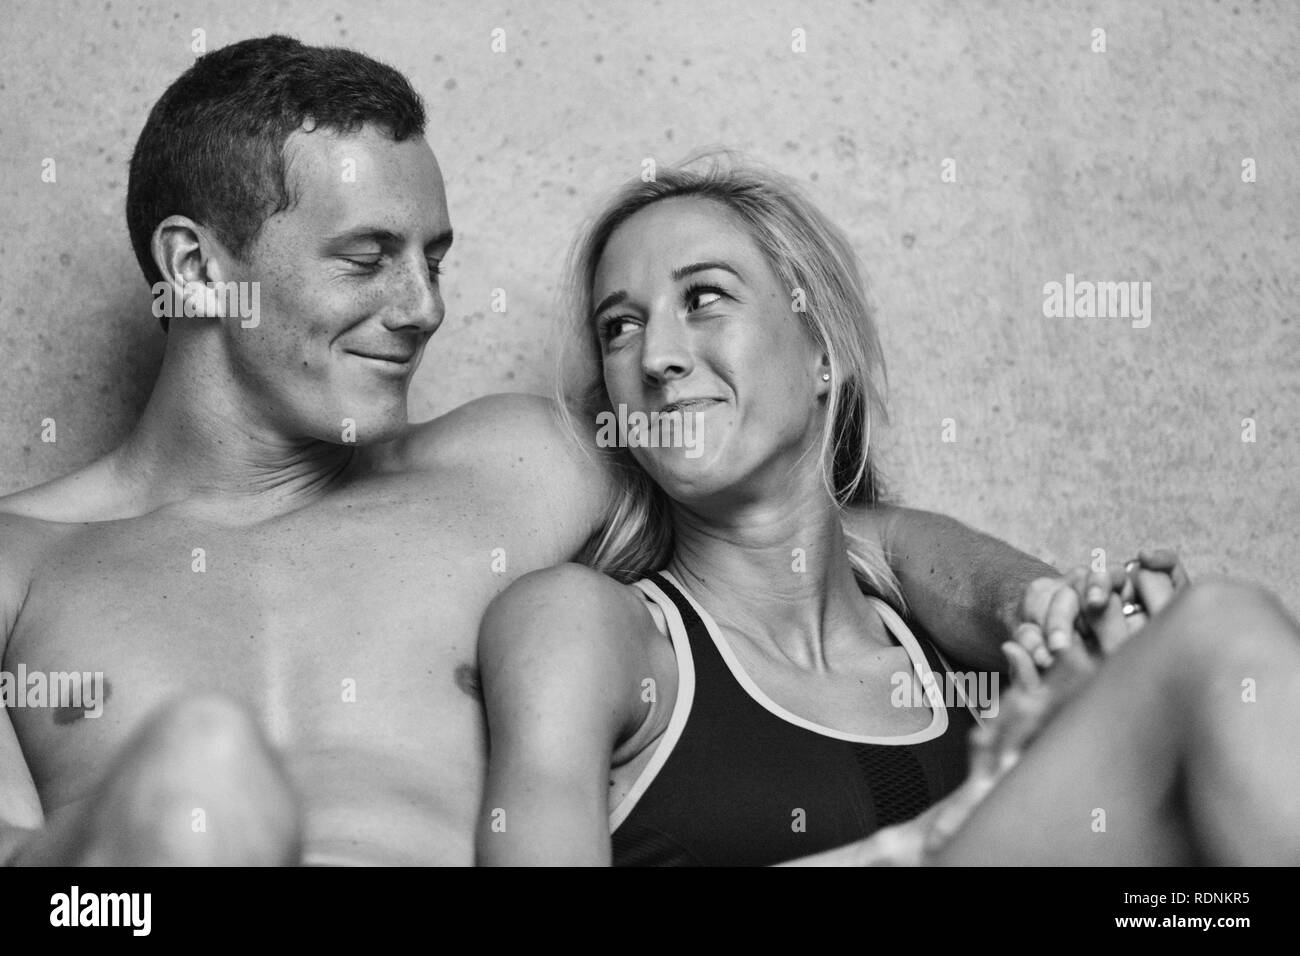 Fit young couple looking at each other - Stock Image